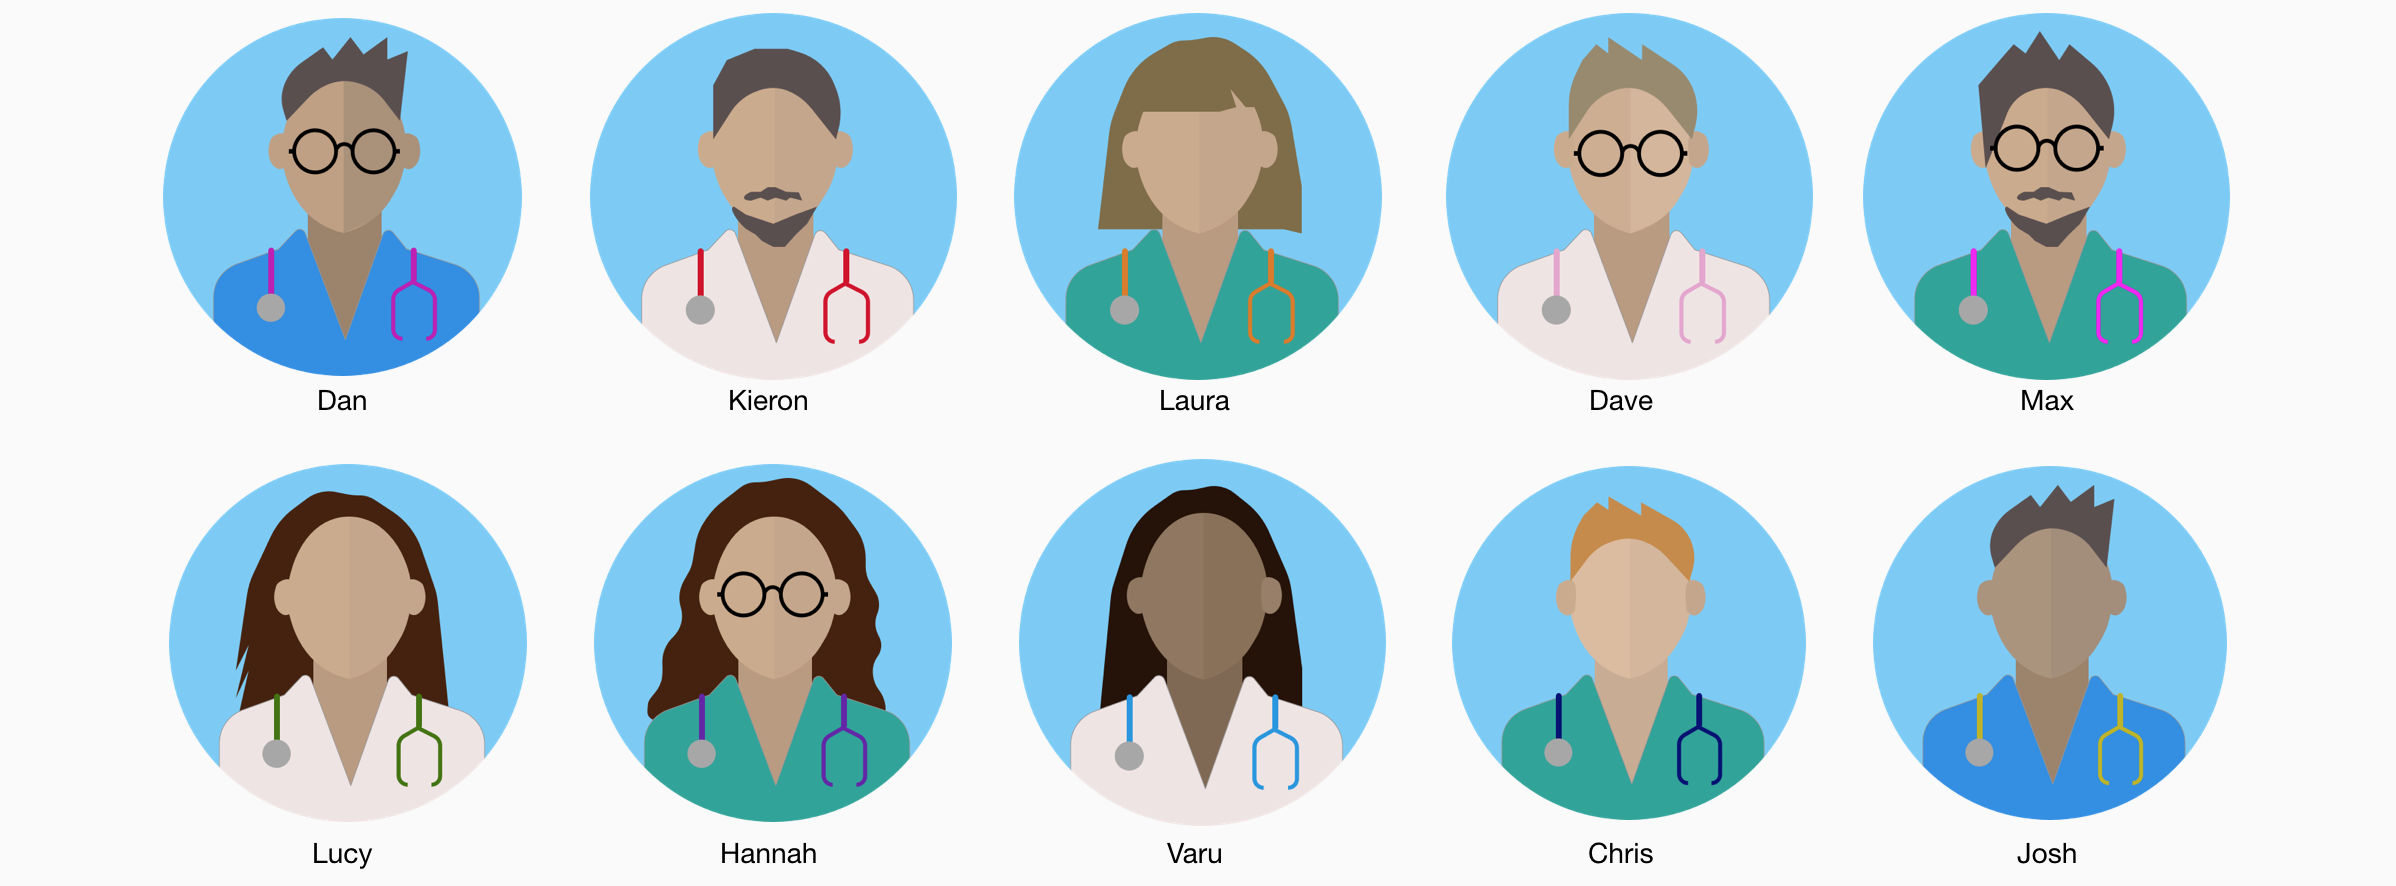 Illustration of the ten junior doctors that participated in user interviews and usability testing